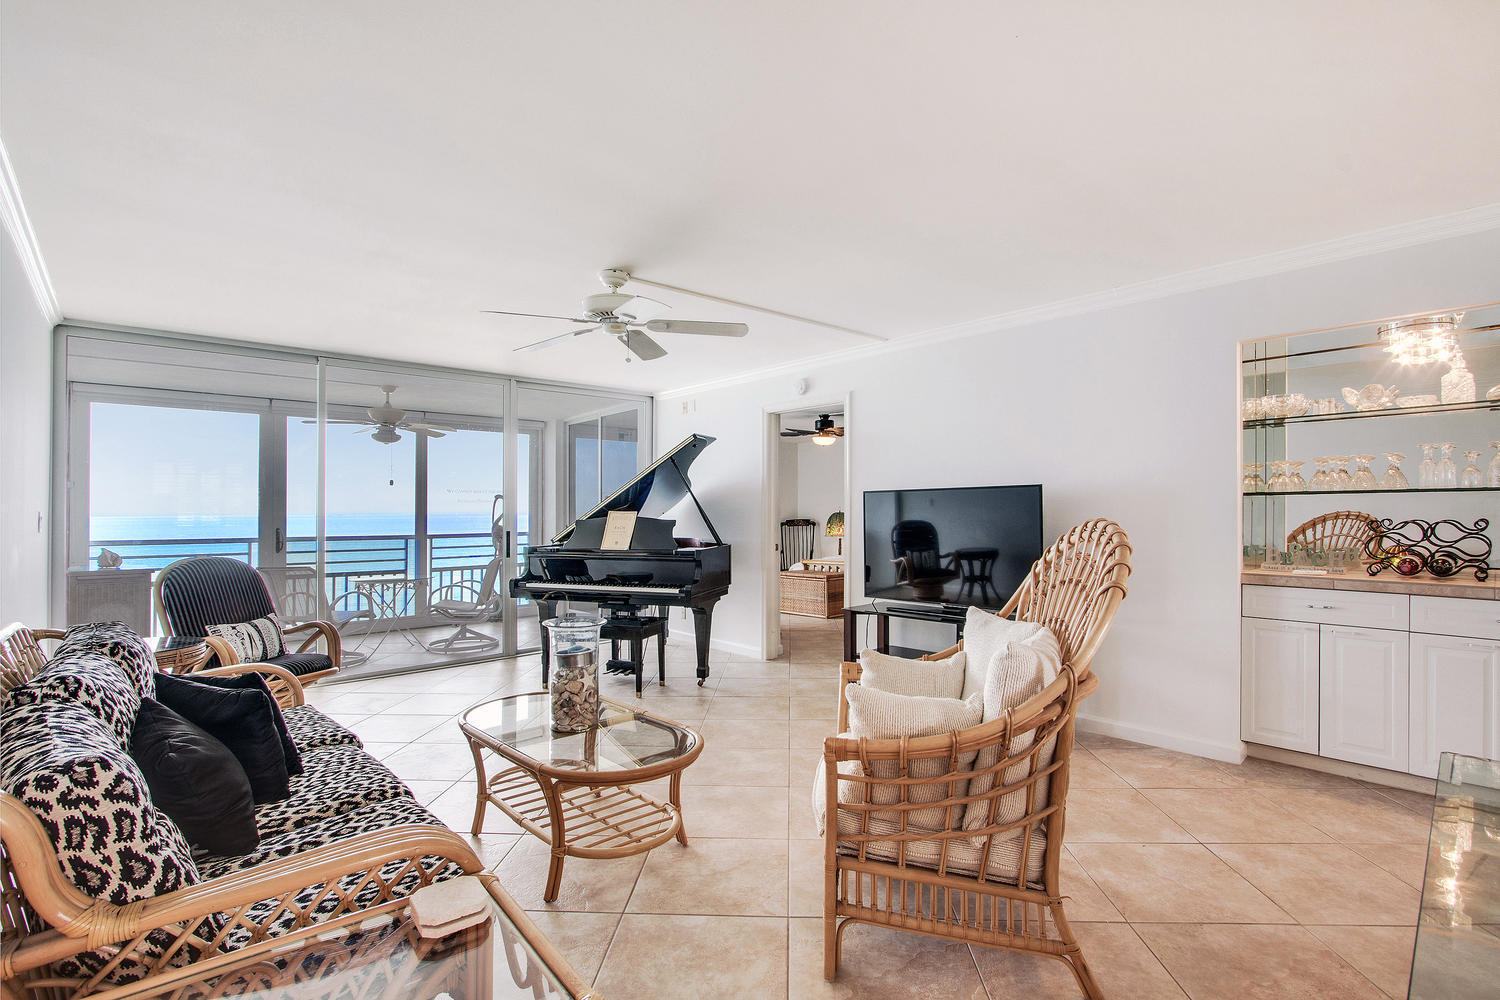 JUNO BY THE SEA HOMES FOR SALE